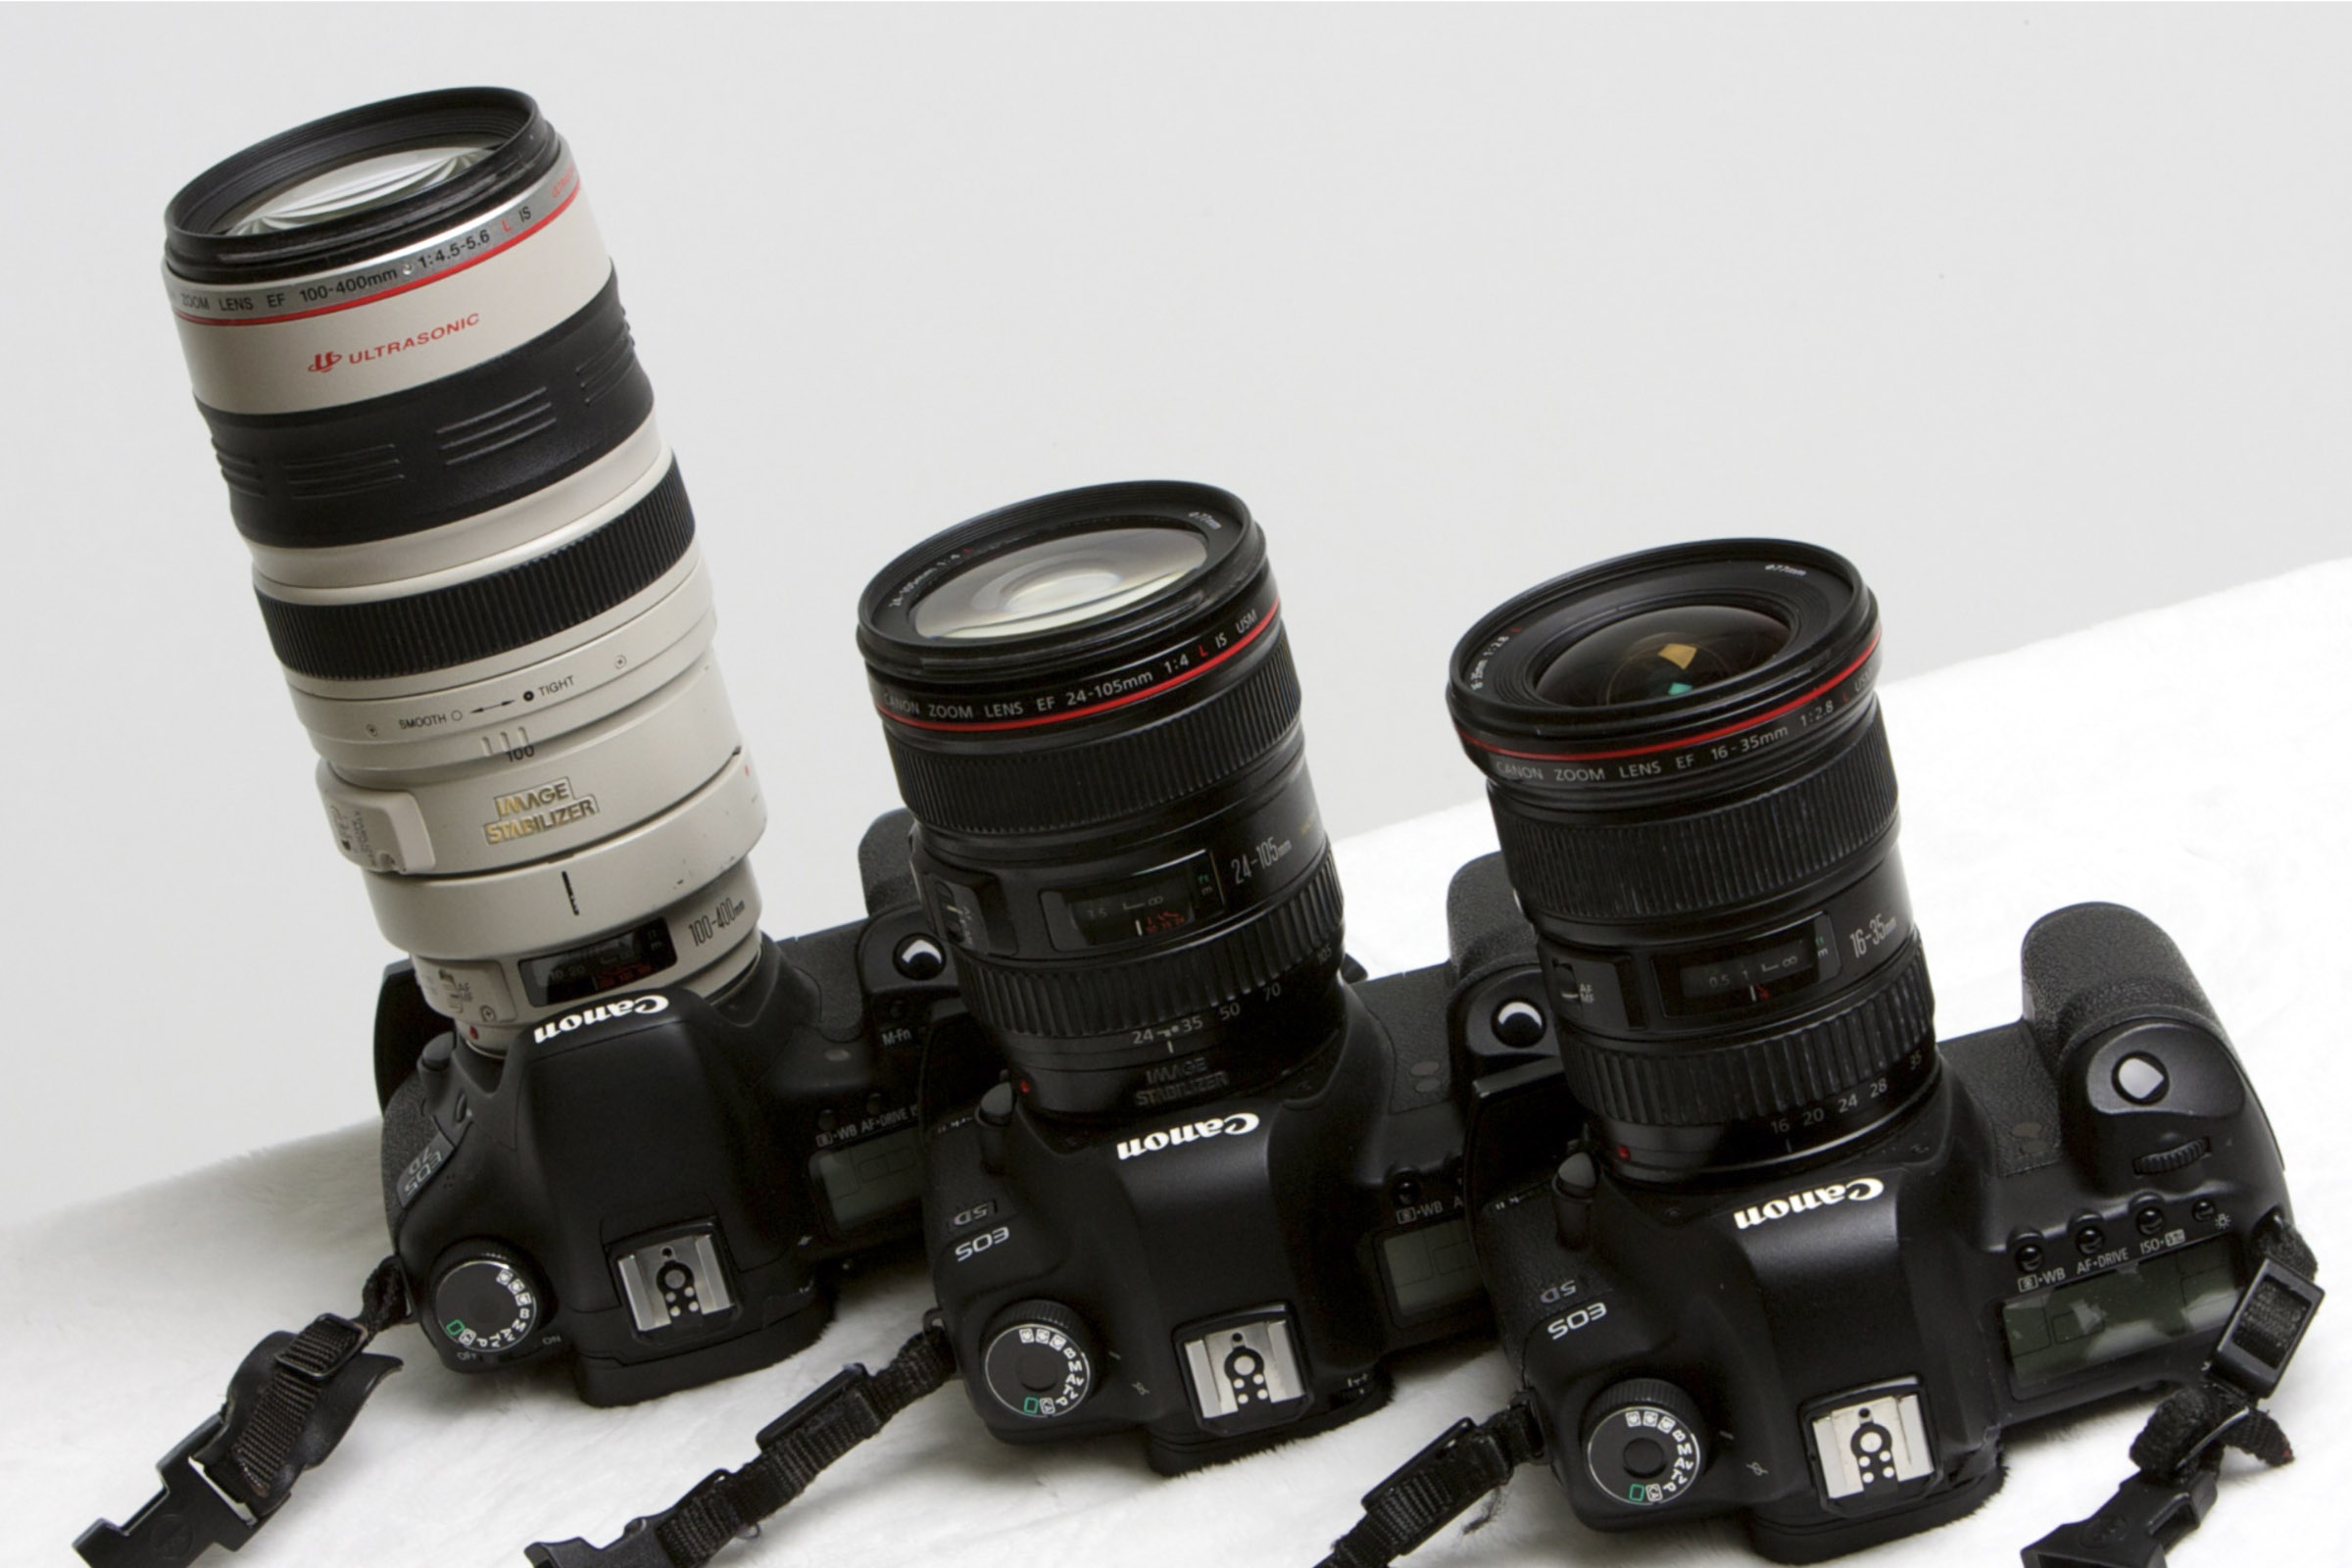 L to R: 100-400mm, 24-105mm, 16-35mm